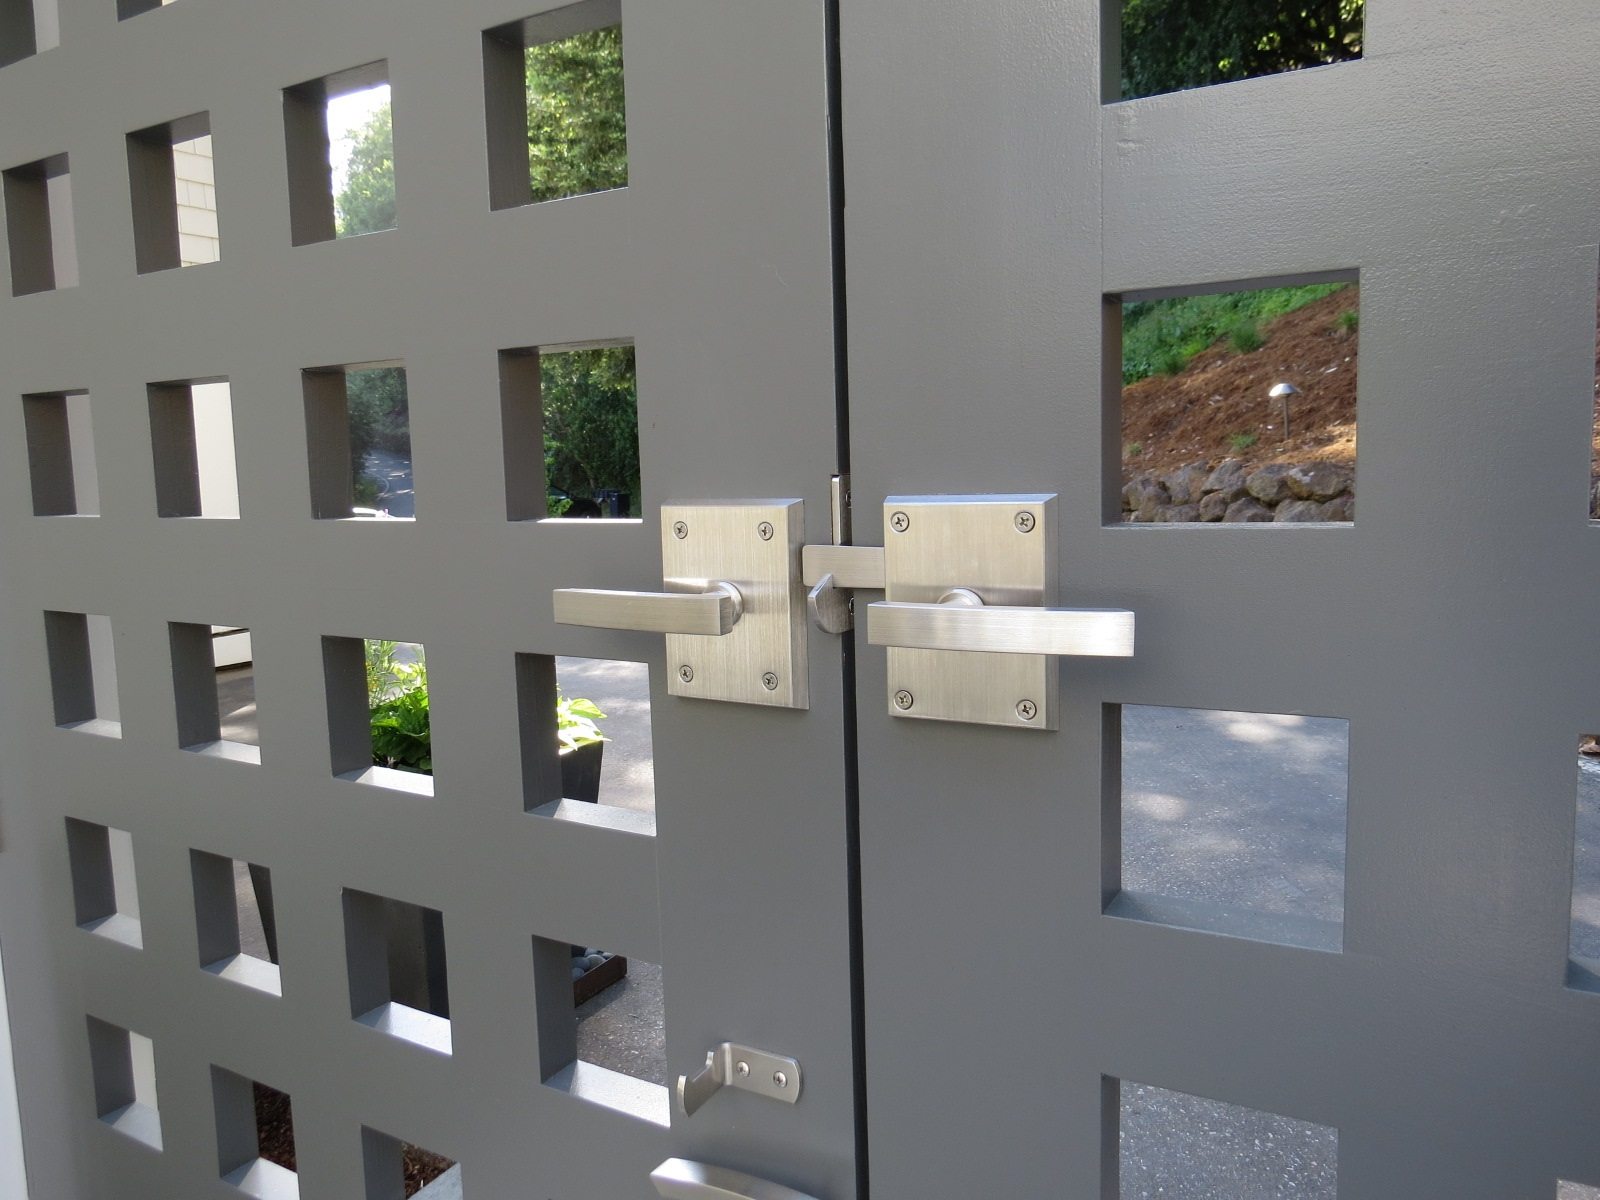 double-gate-interior-view-with-active-latch-and-dummy-handle-by-360-yardware.jpg